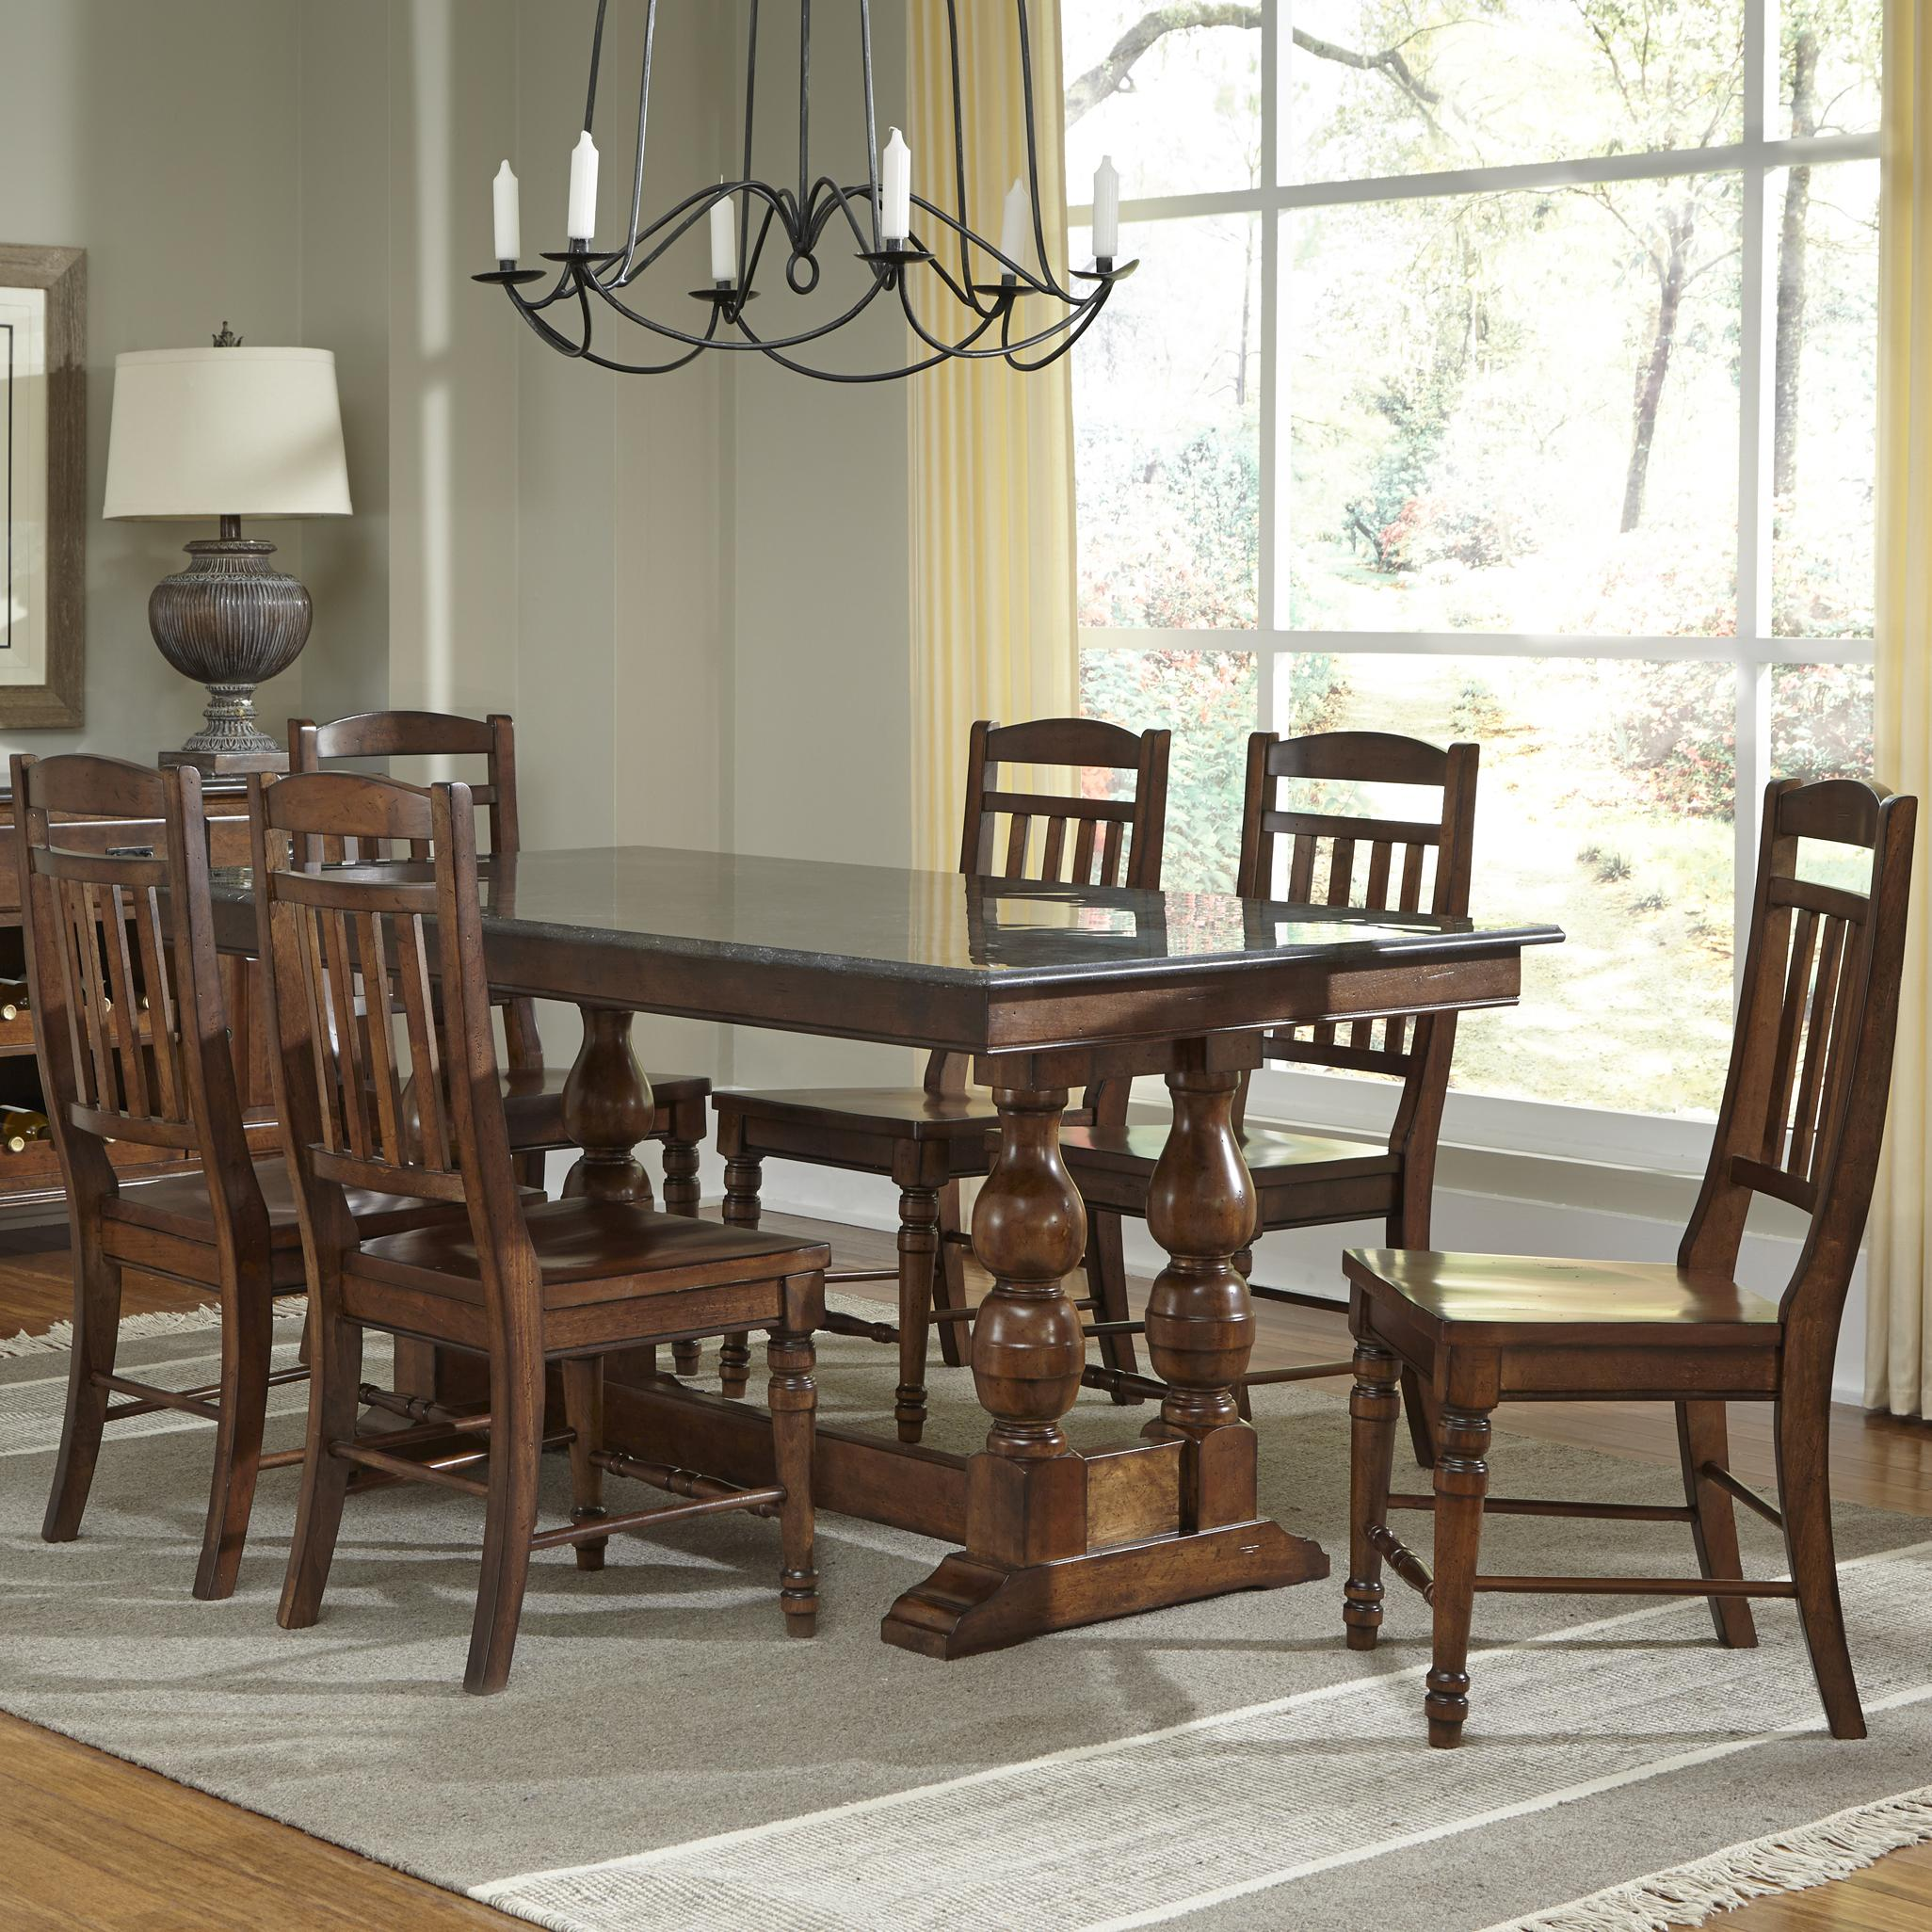 AAmerica Andover Park 7 Piece Dining Set - Item Number: ADV-AC-6-30-0+6x2-65-K